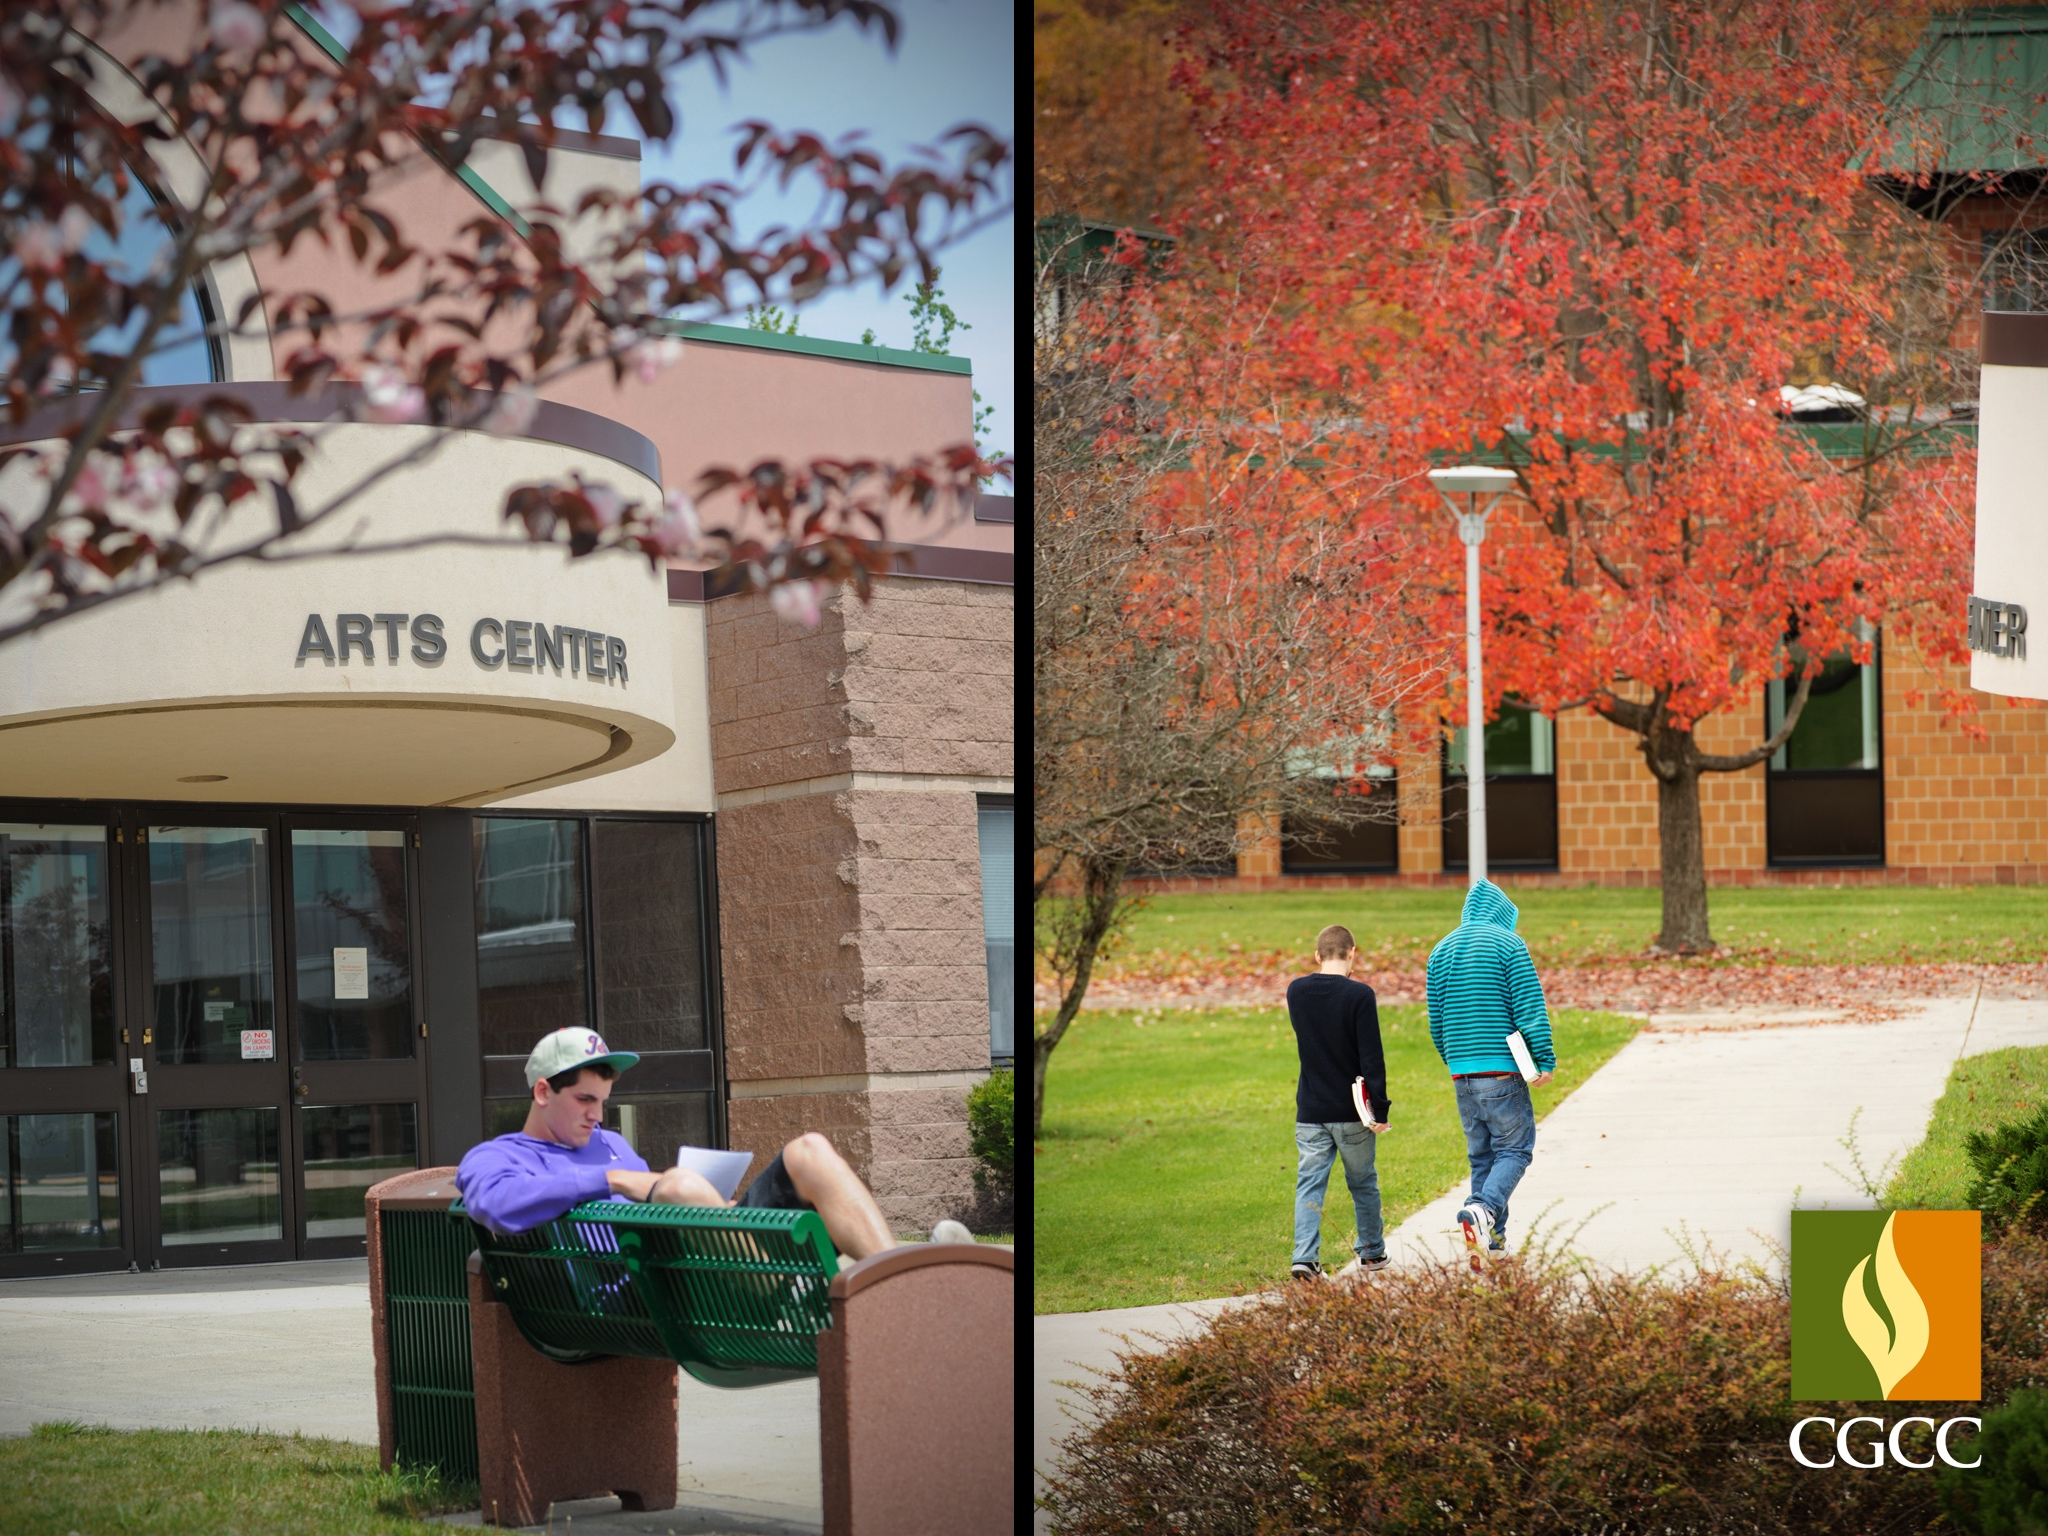 two images of students outside on campus